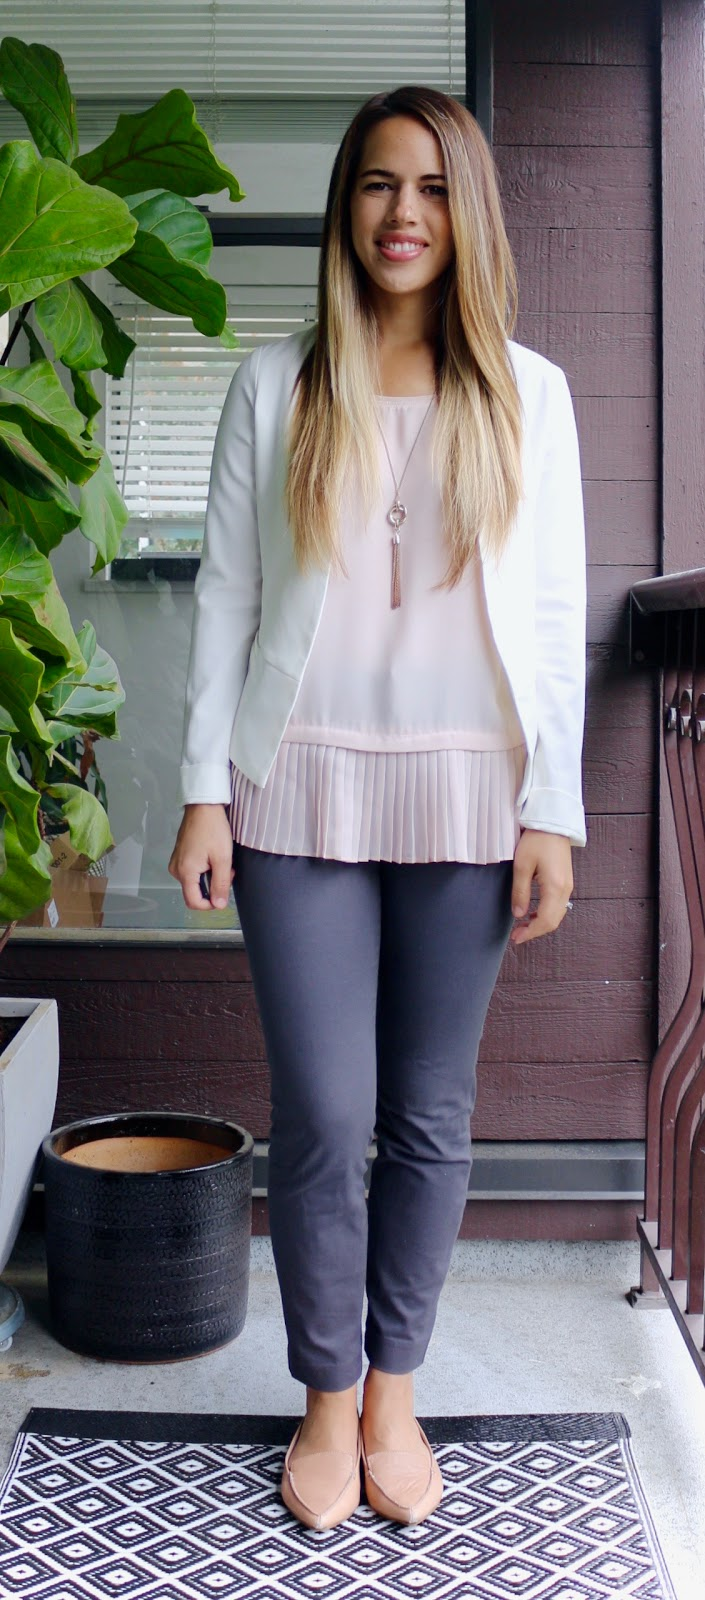 Jules in Flats - Pleated Peplum Top with White Blazer